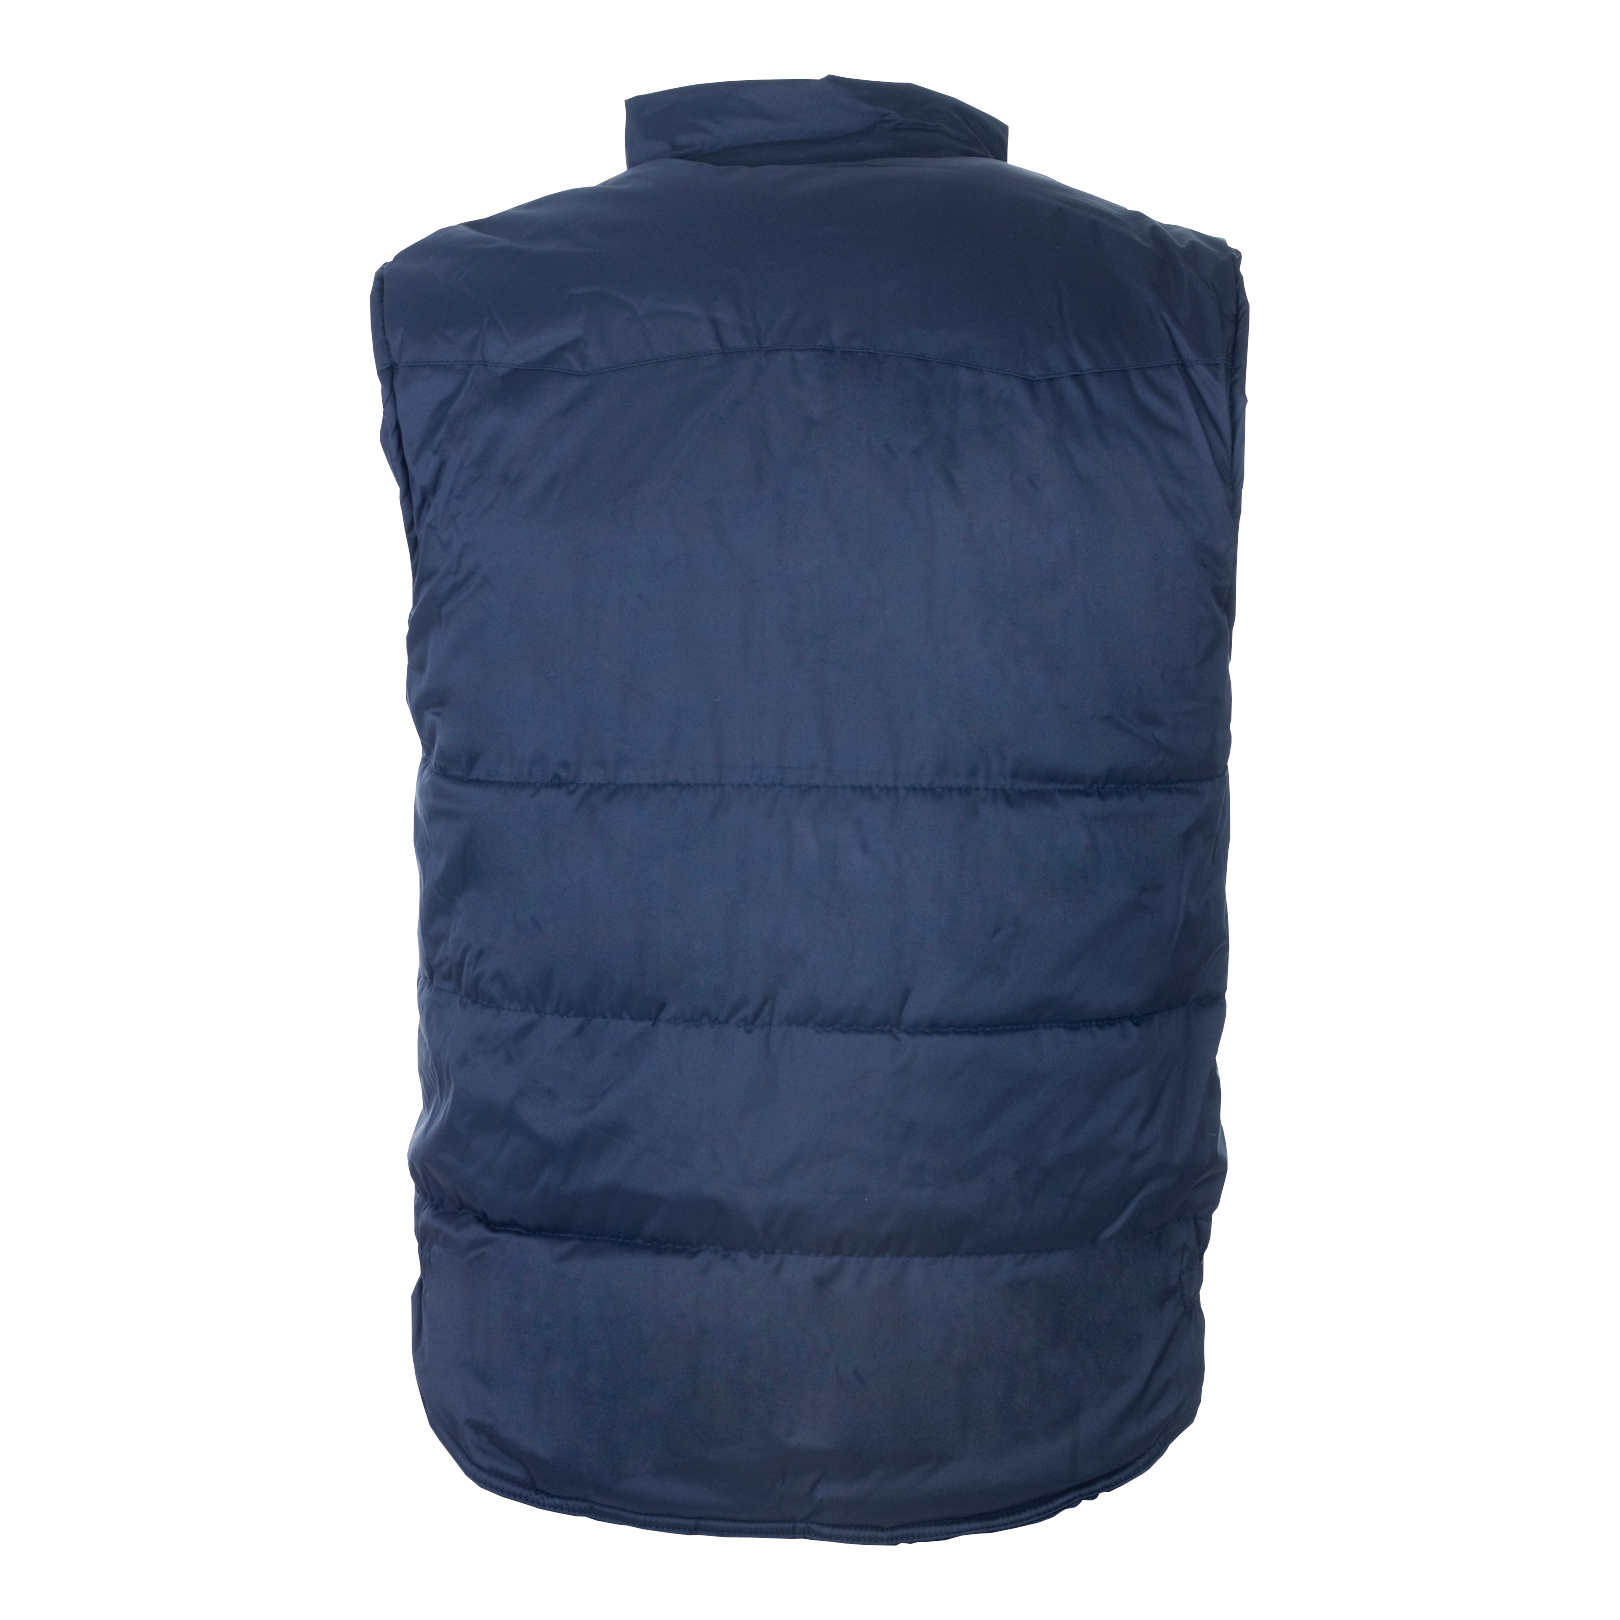 Body Warmer Polyester with Padding & Multi Pockets Small Navy Ref HBNS Approx 3 Day Leadtime